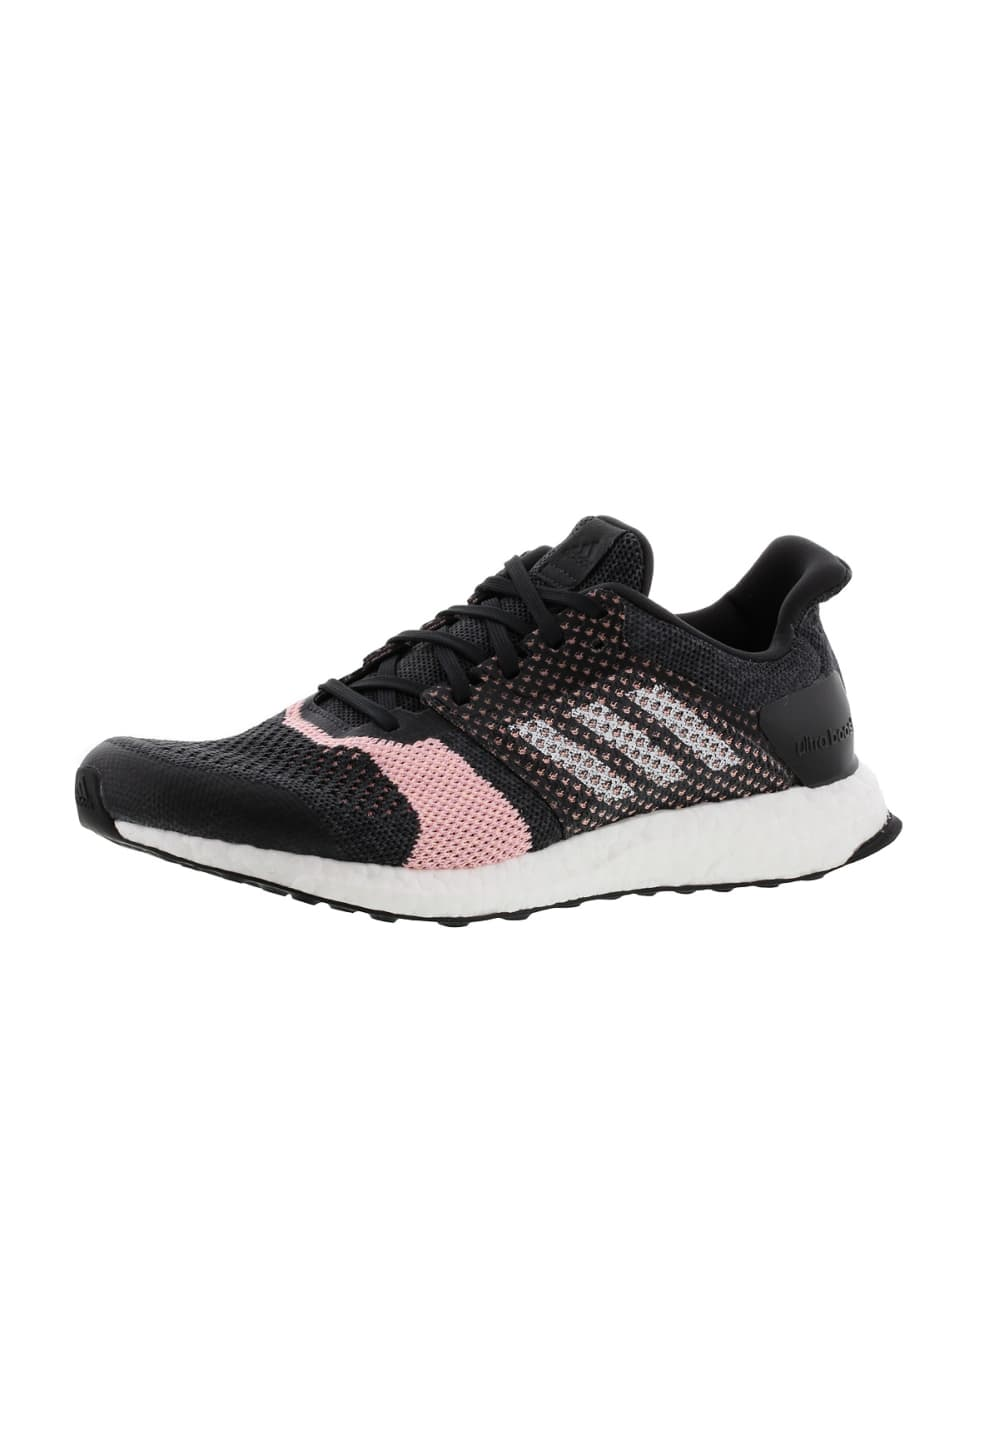 f631ac27b014b Next. -60%. This product is currently out of stock. adidas. Ultra Boost St  - Running shoes for Women